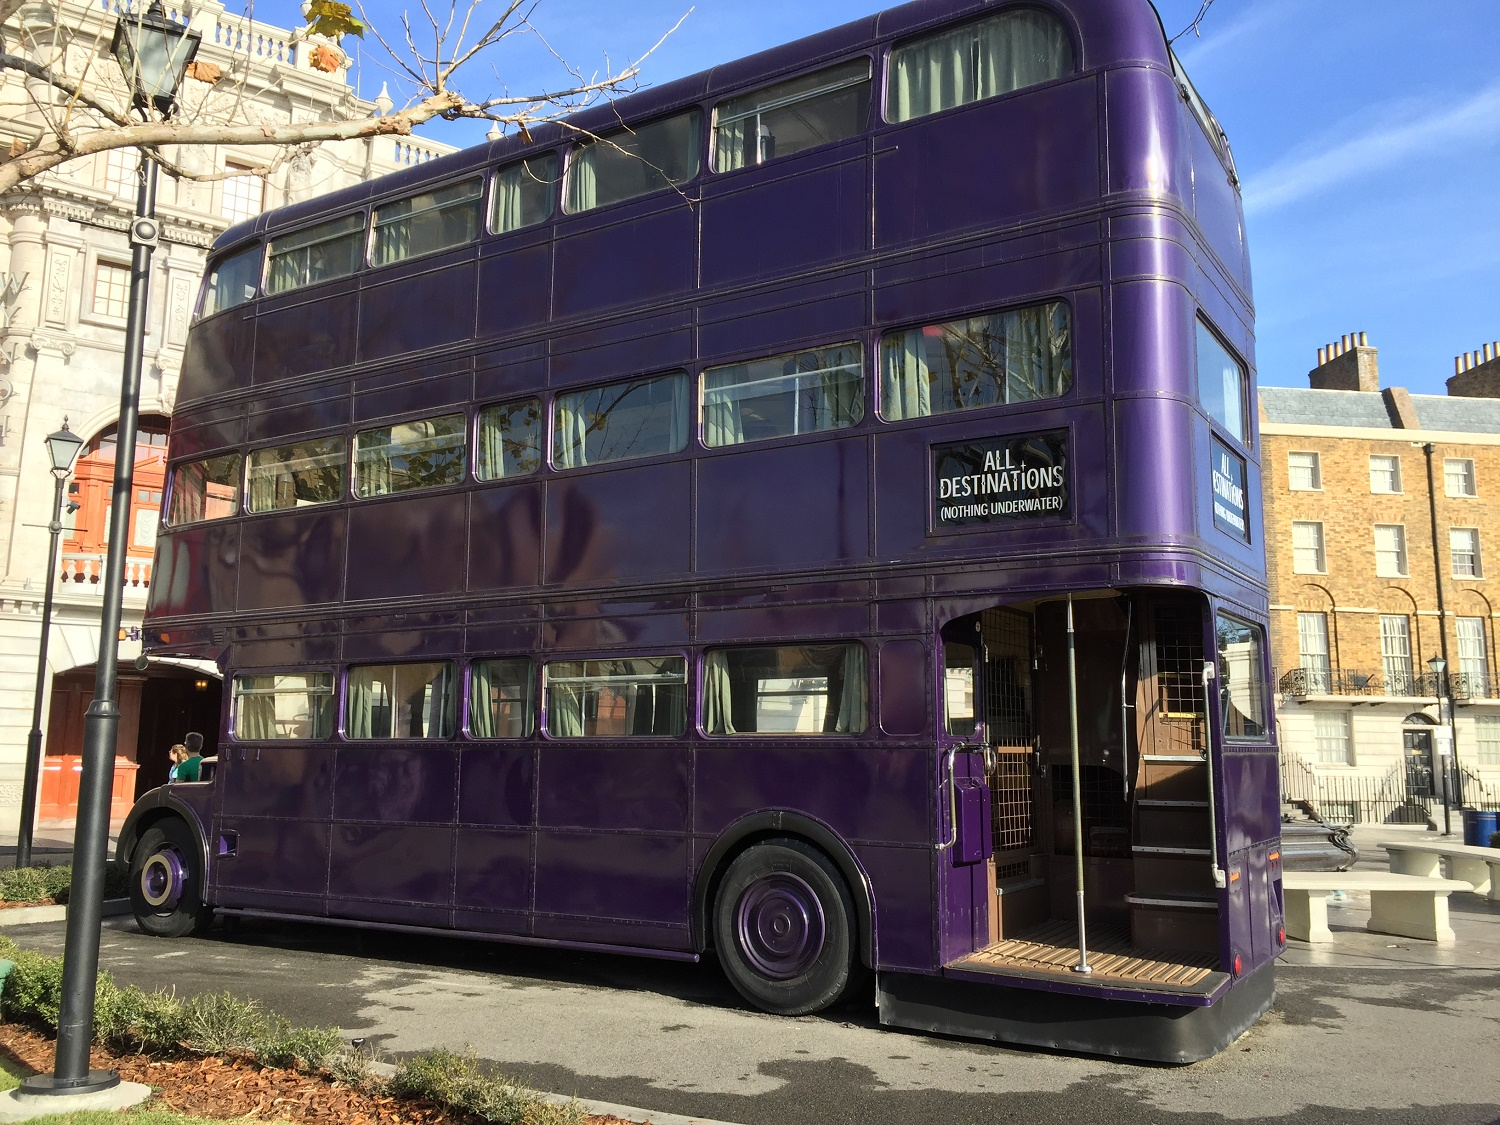 The Knight Bus is a triple-decker bus from the Harry Potter films. You can interact with the conductor and his sidekick, a shrunken head.